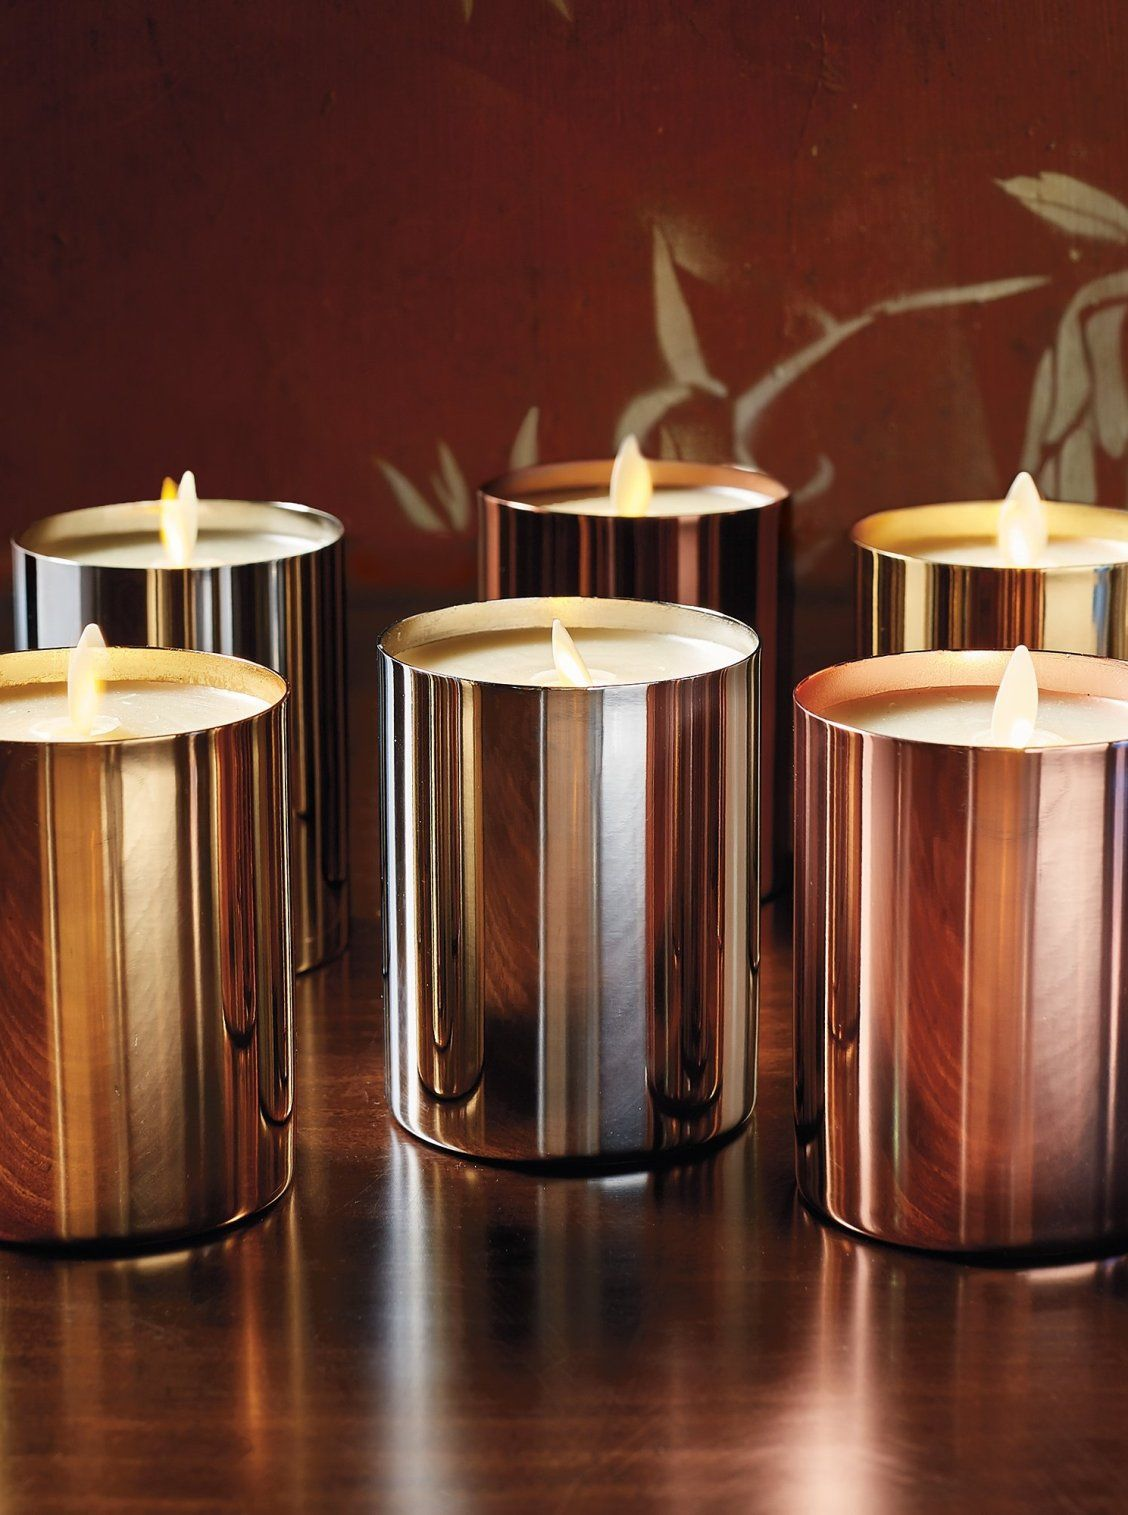 Shiny Metallic Vessels Add Holiday Flair To Our Ivory Colored Faux Flame Candles Capturing The Beauty Of Candlelight In Candles Frontgate Glass Candle Holders